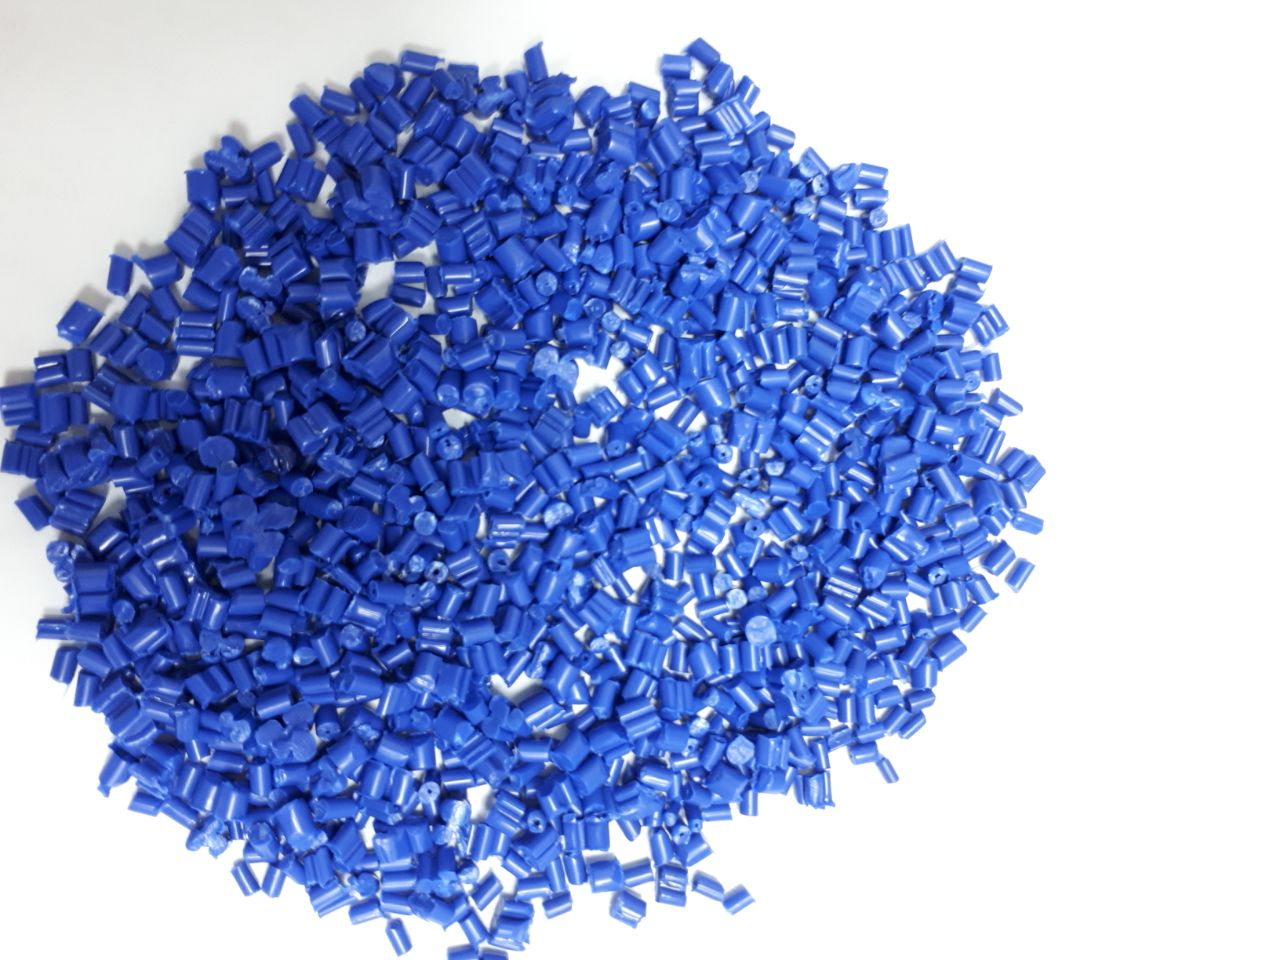 Blue Color PP Non-Woven Reprocess Granules 75 MT for Sale @ 850 US $